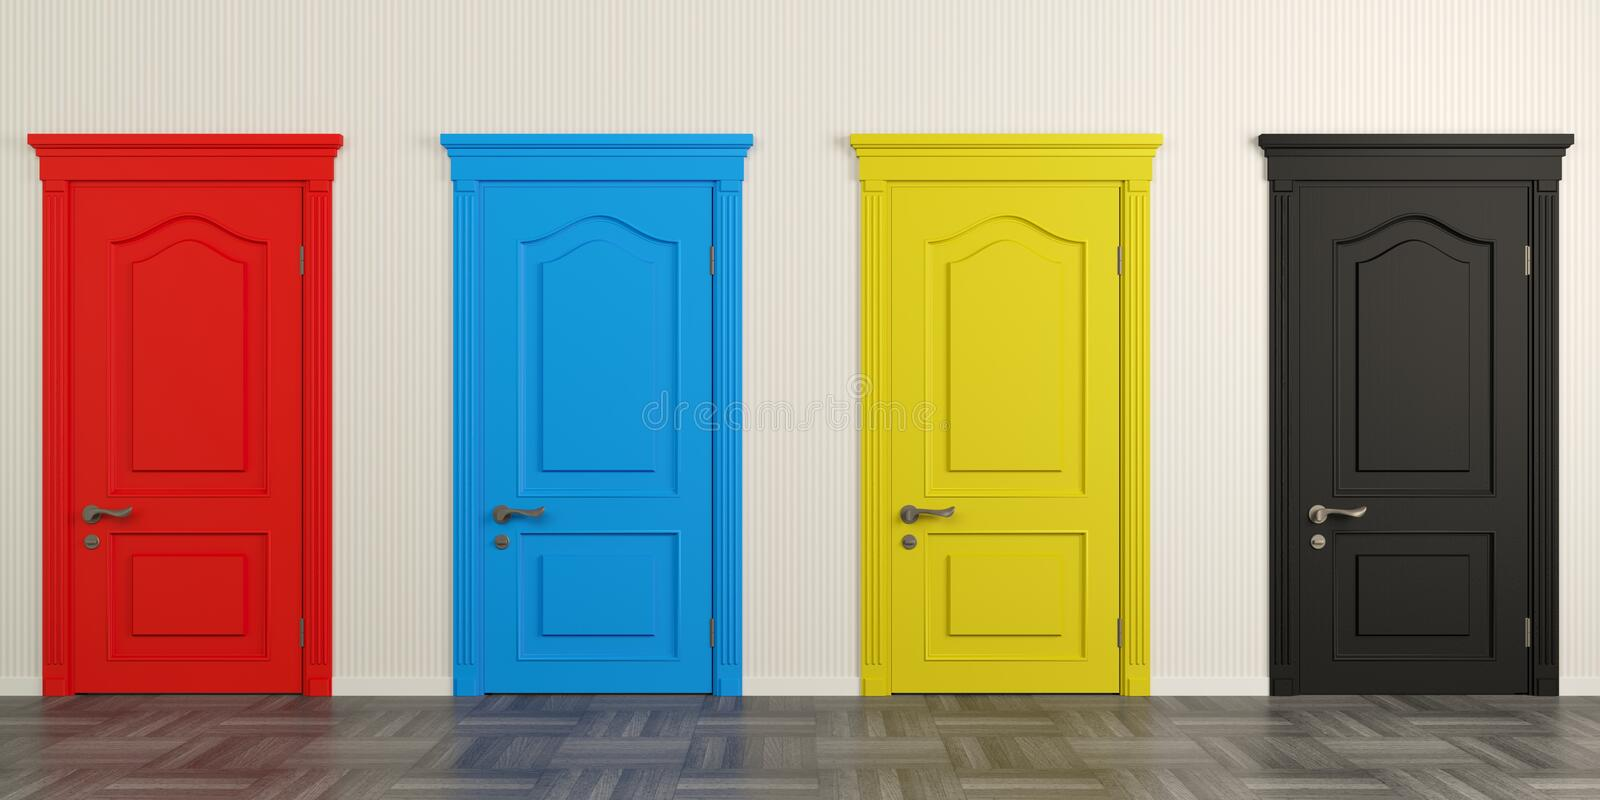 Four colorful doors on the wall royalty free stock photo